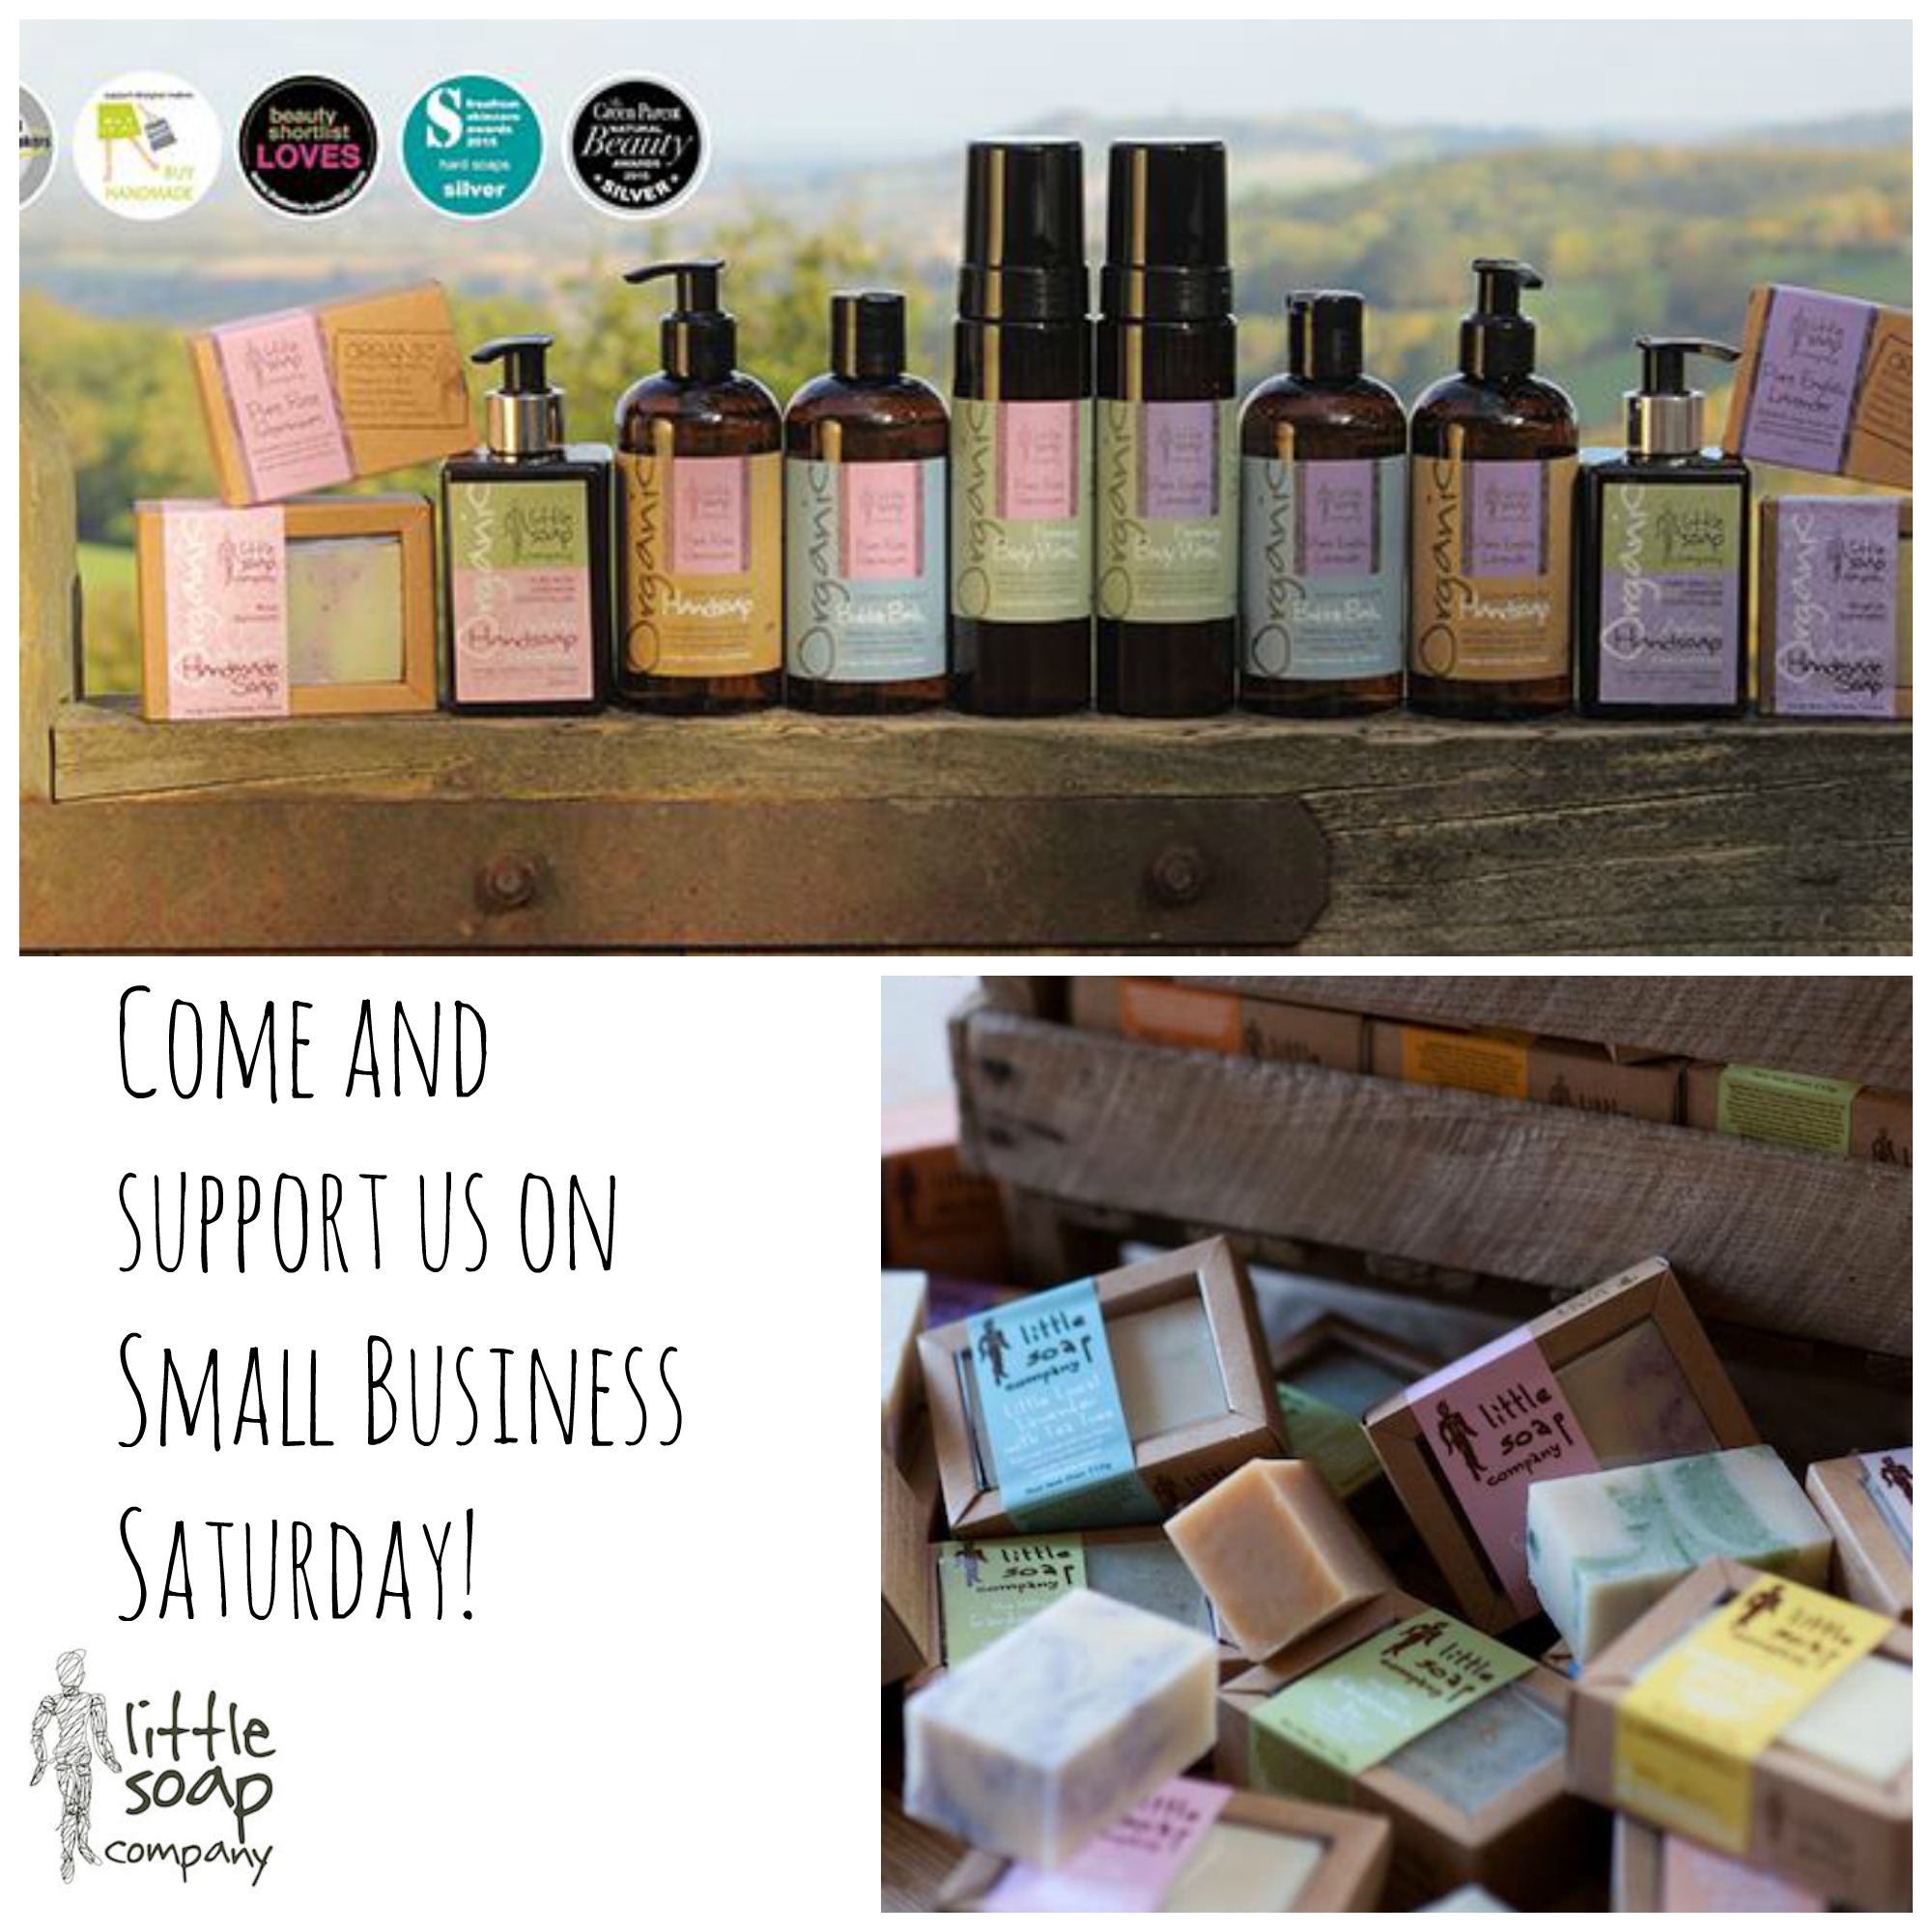 Come and support us on Small Business Saturday!_LittleSoapCompany.co.uk